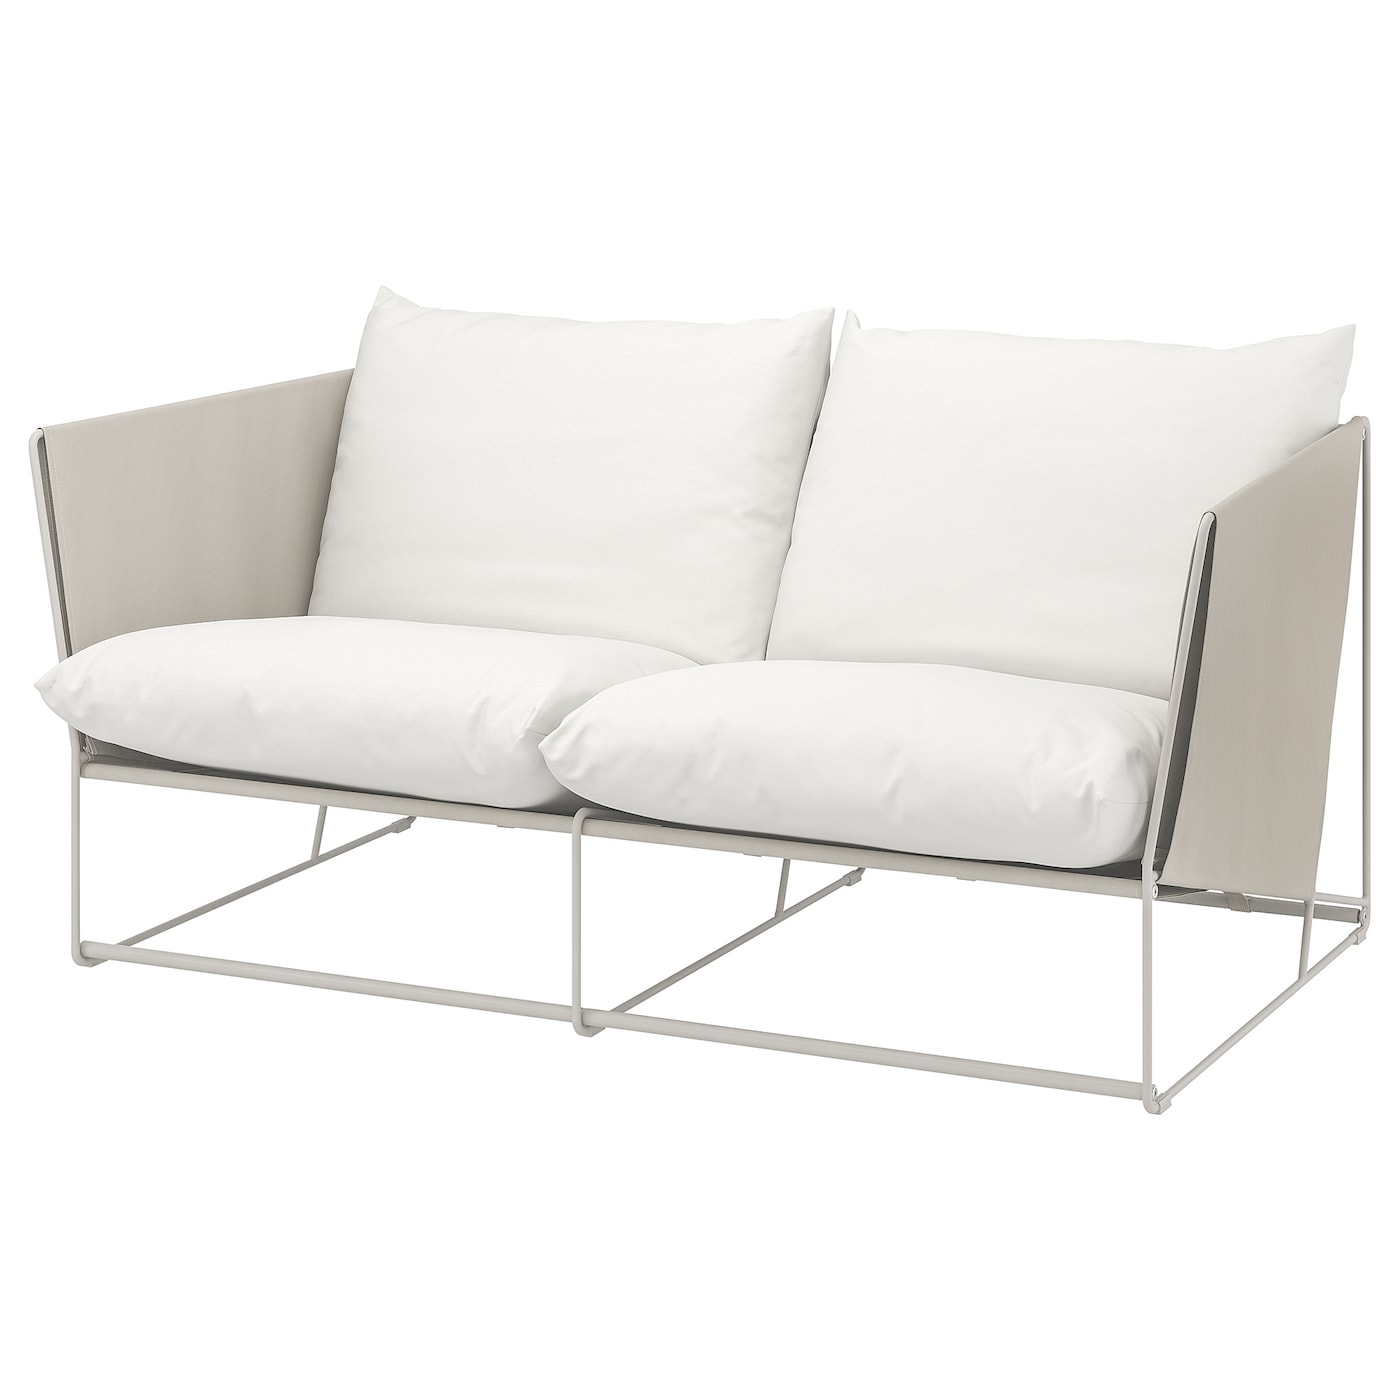 Havsten 2 Seat Sofa In Outdoor Beige